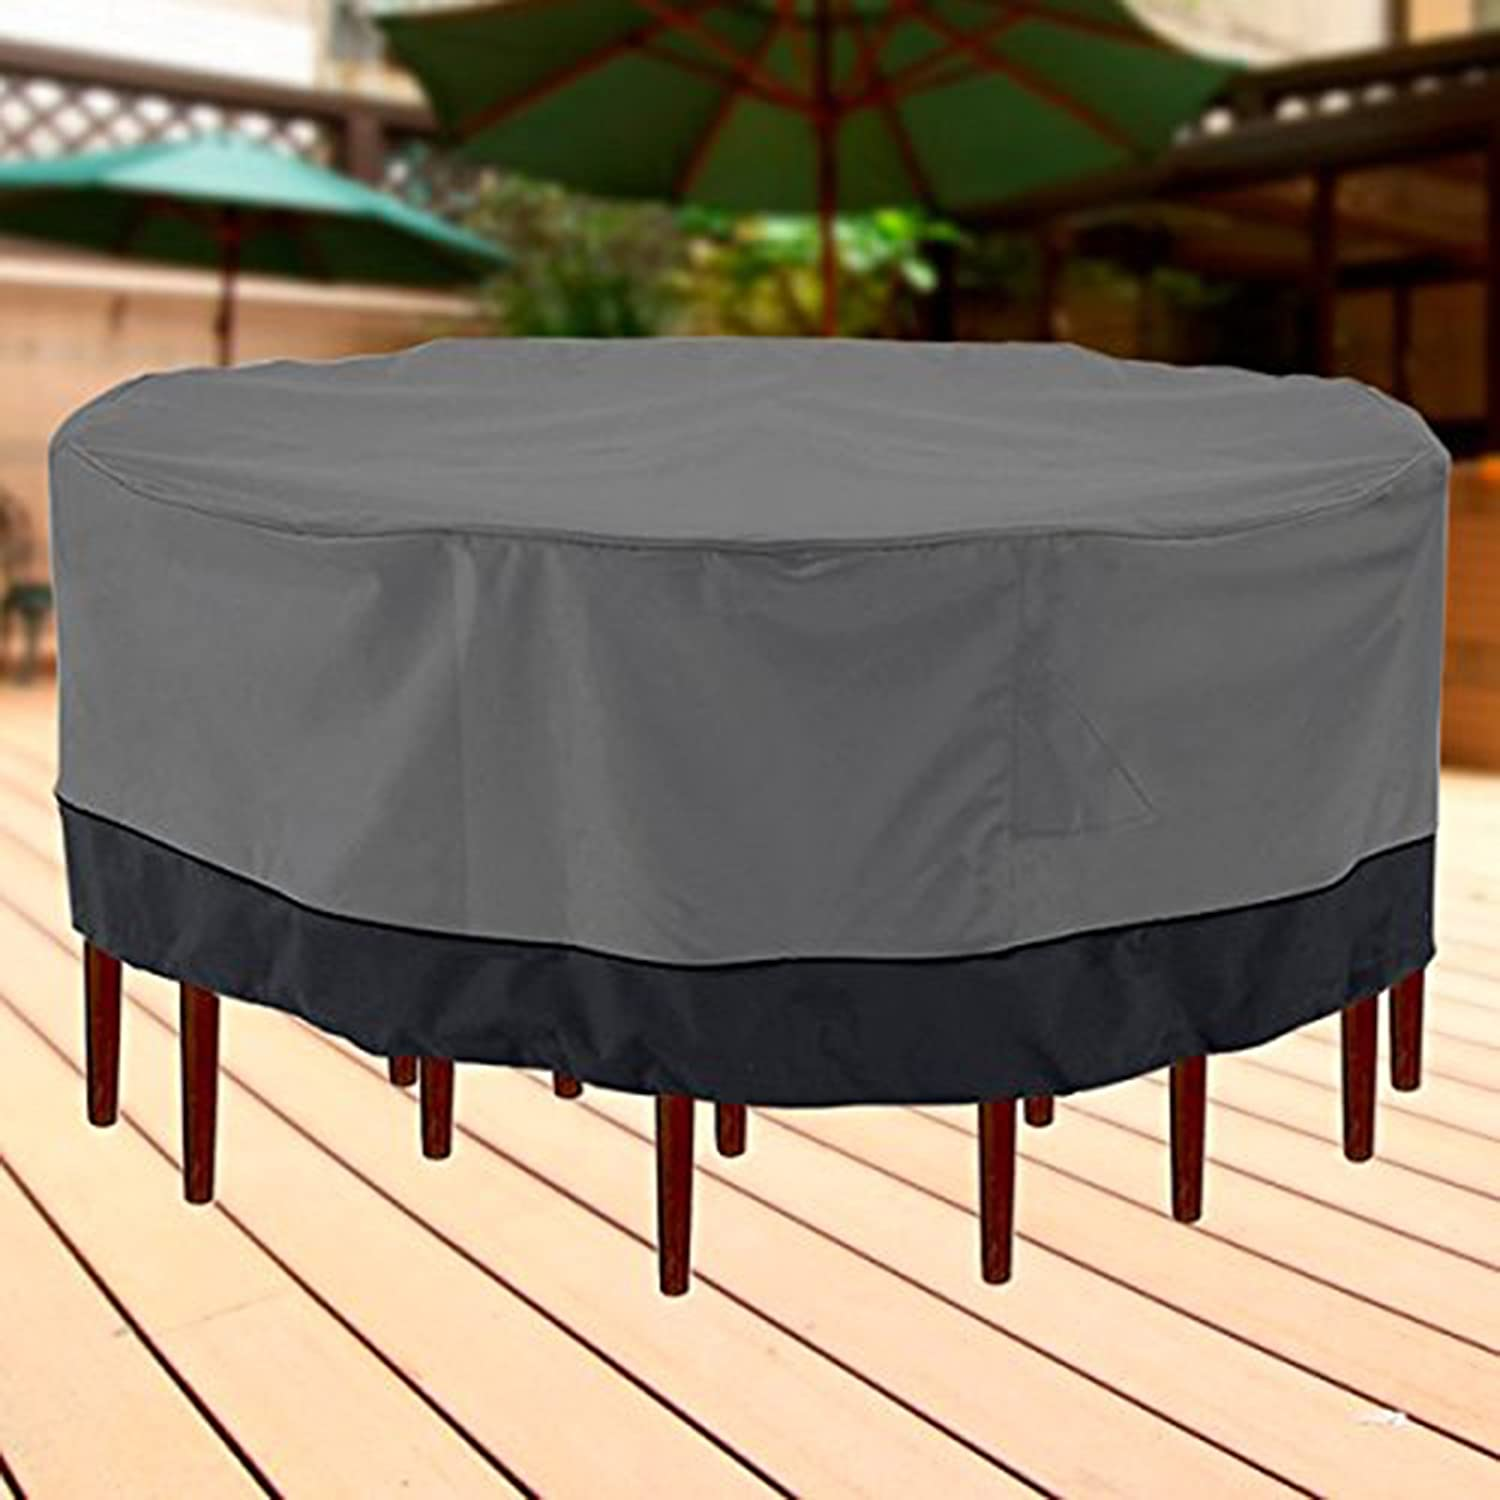 coffee of garden tablecloth extra for hole cheap large porch photos outside round and outdoor ideas patio furniture beautiful table l chair covers with shaped umbrella plans cover set chairs tarp gallery tables size boundless